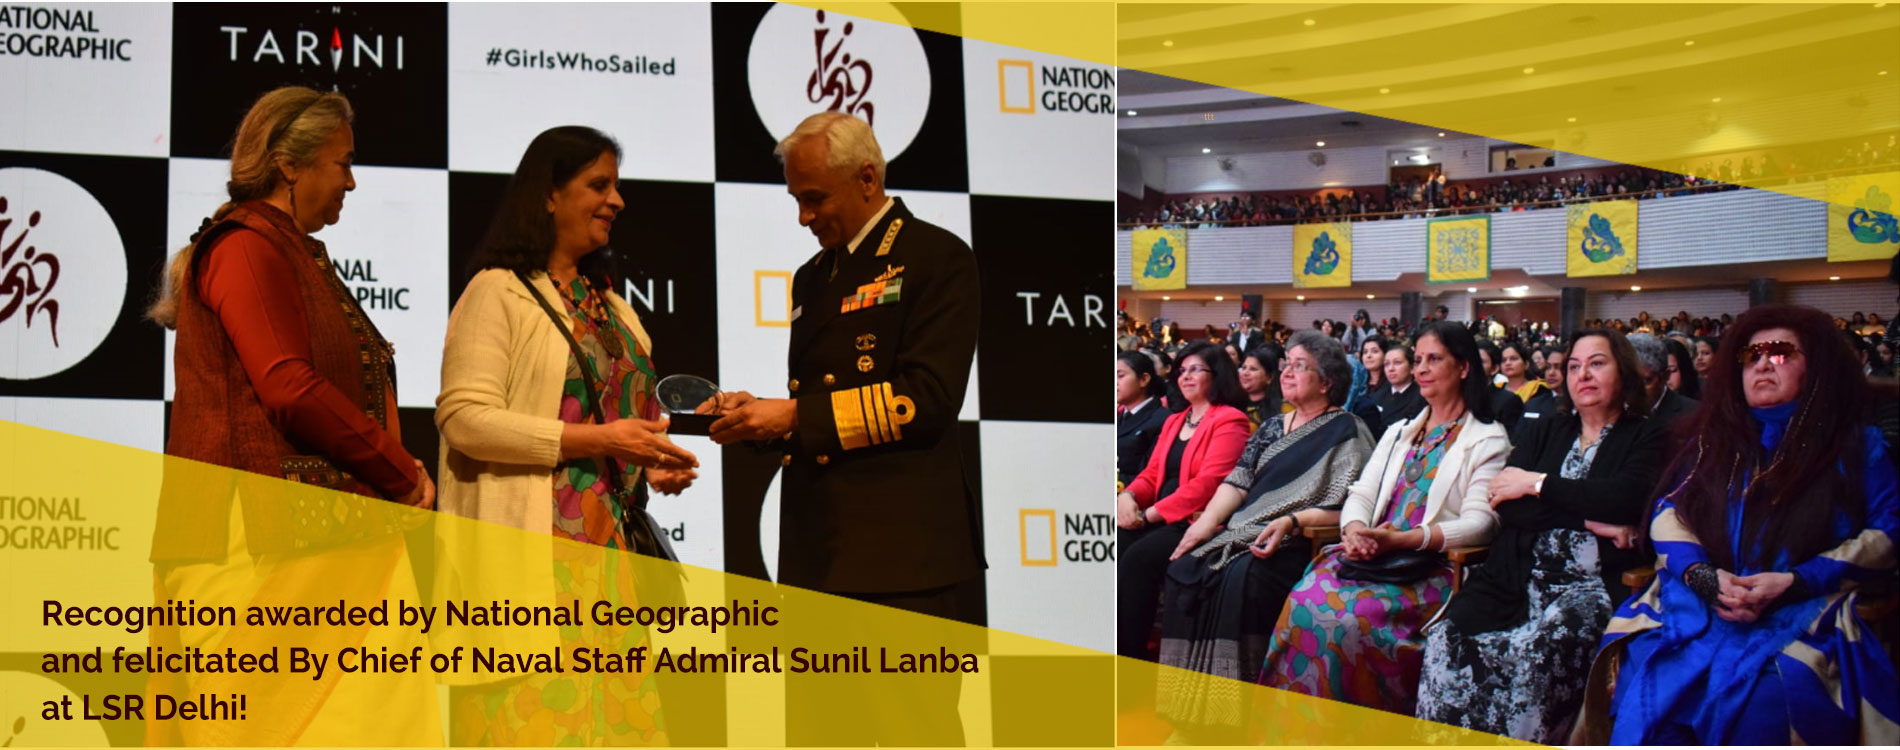 Recognition awarded by National Geographic, and felicitated By Chief of Naval  				Staff Admiral Sunil Lanba at LSR Delhi!